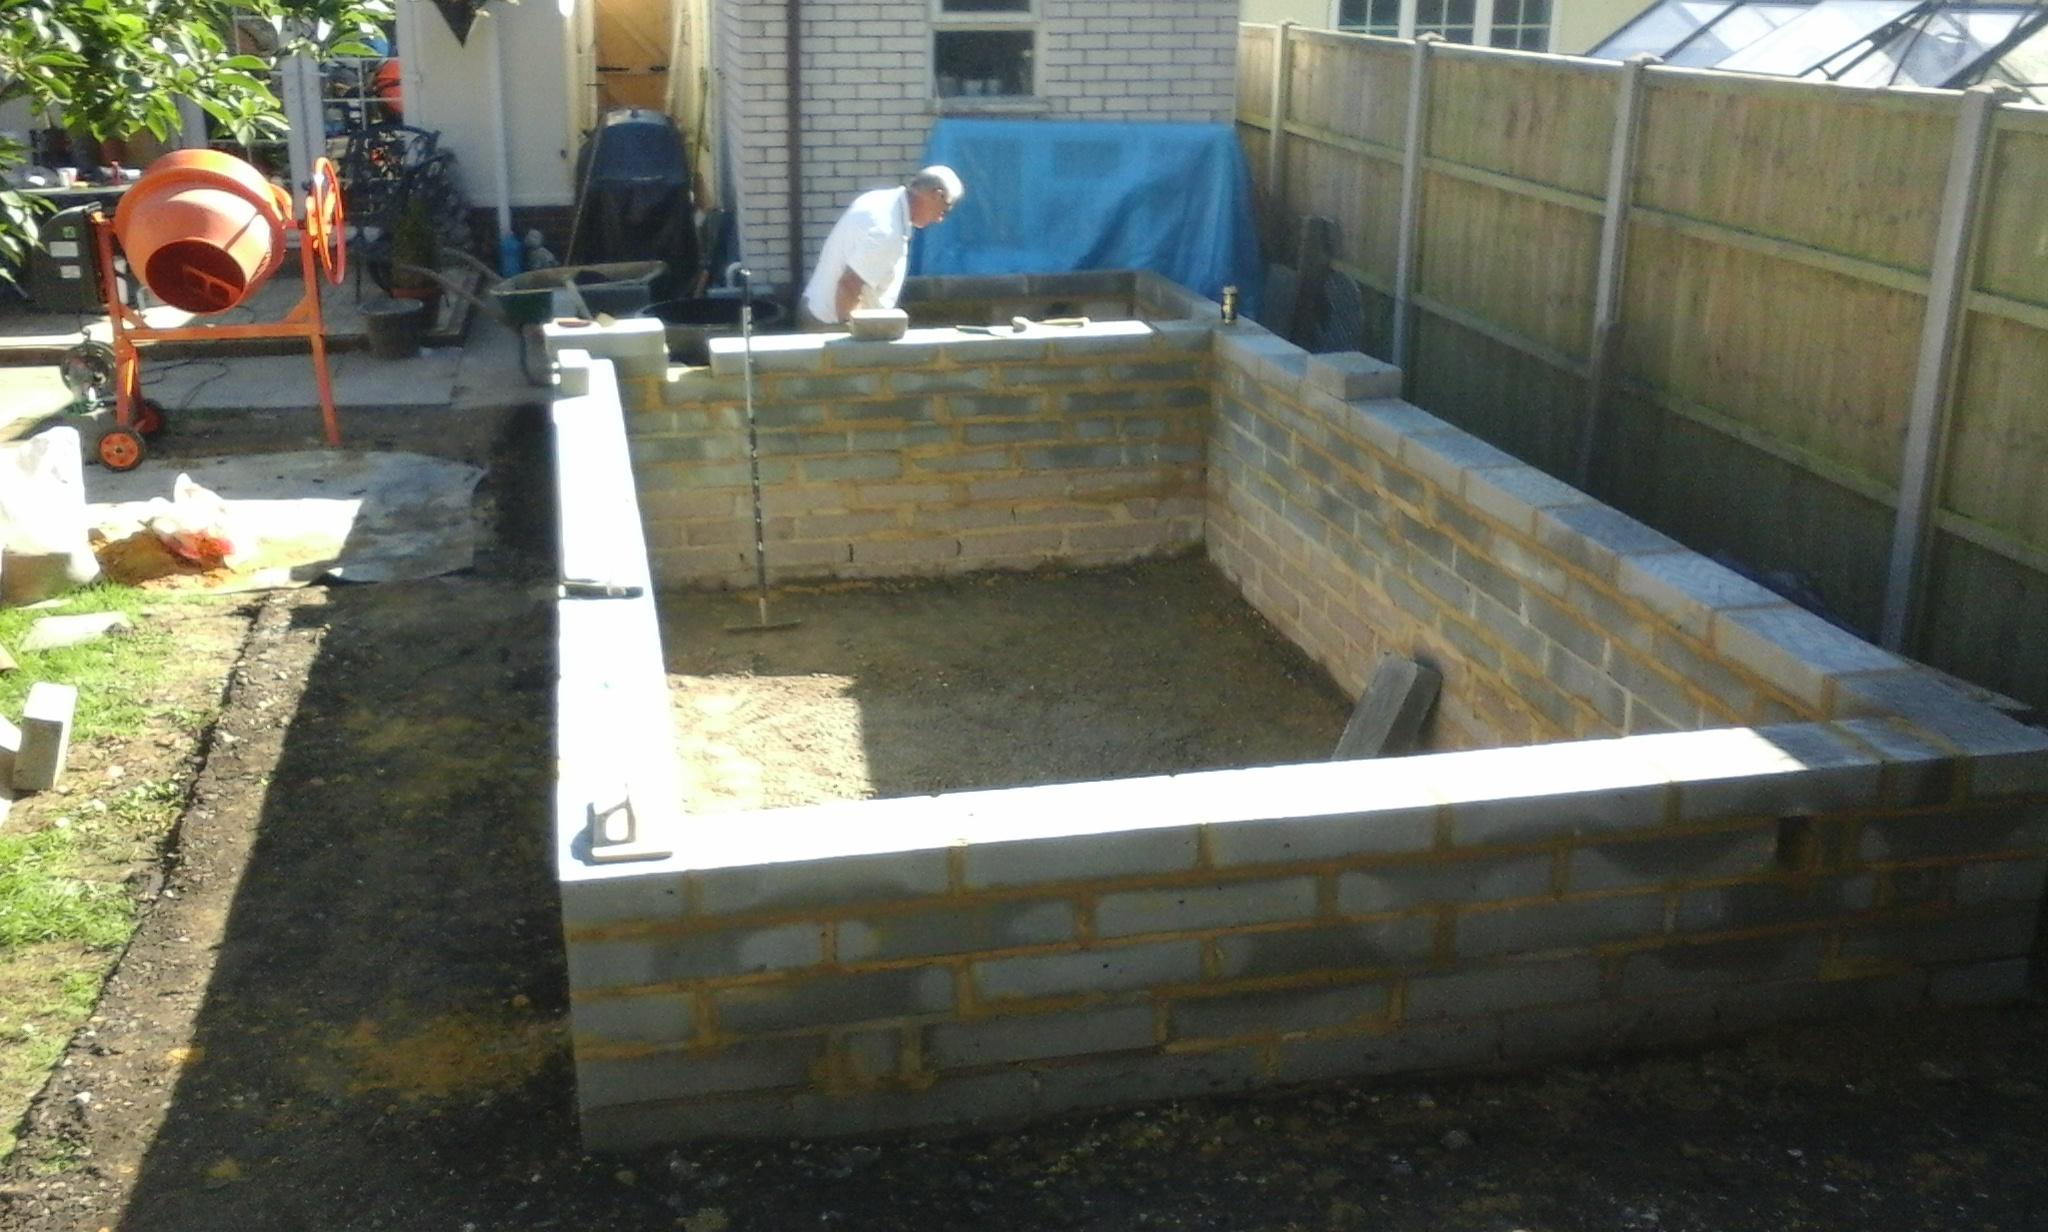 Dorset pond design construction maintenance pond stars uk for Garden pond design and construction